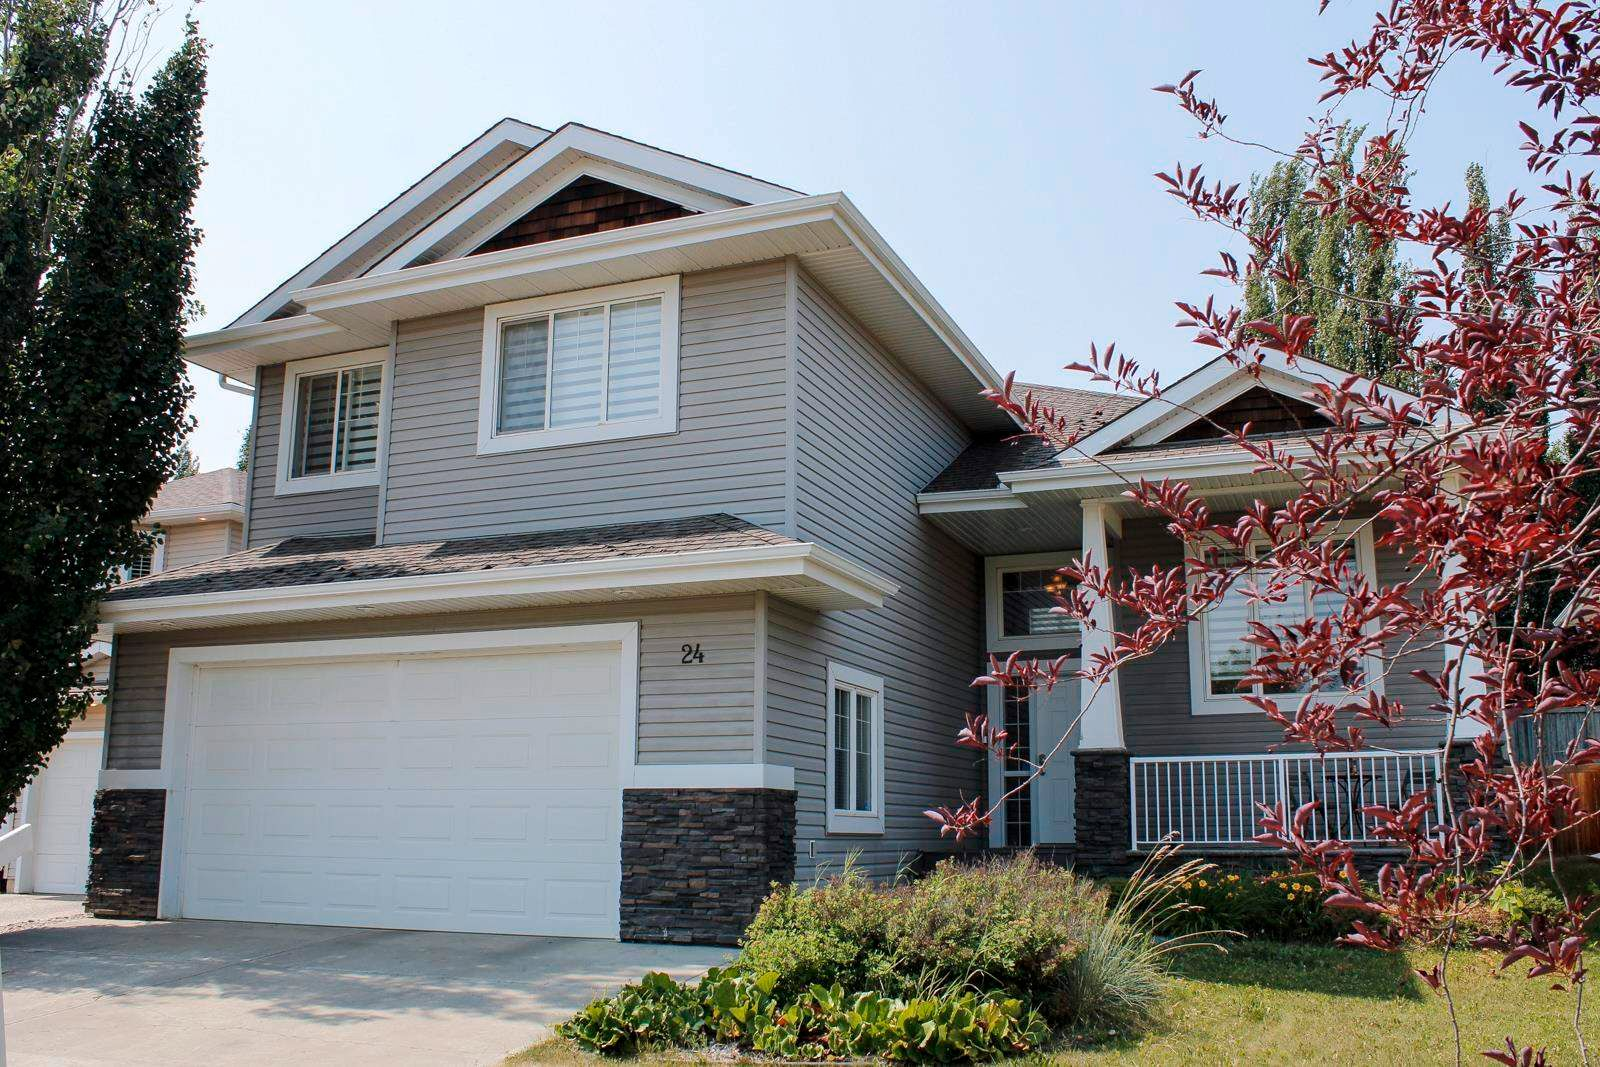 Main Photo: 24 OVERTON Place: St. Albert House for sale : MLS®# E4254889